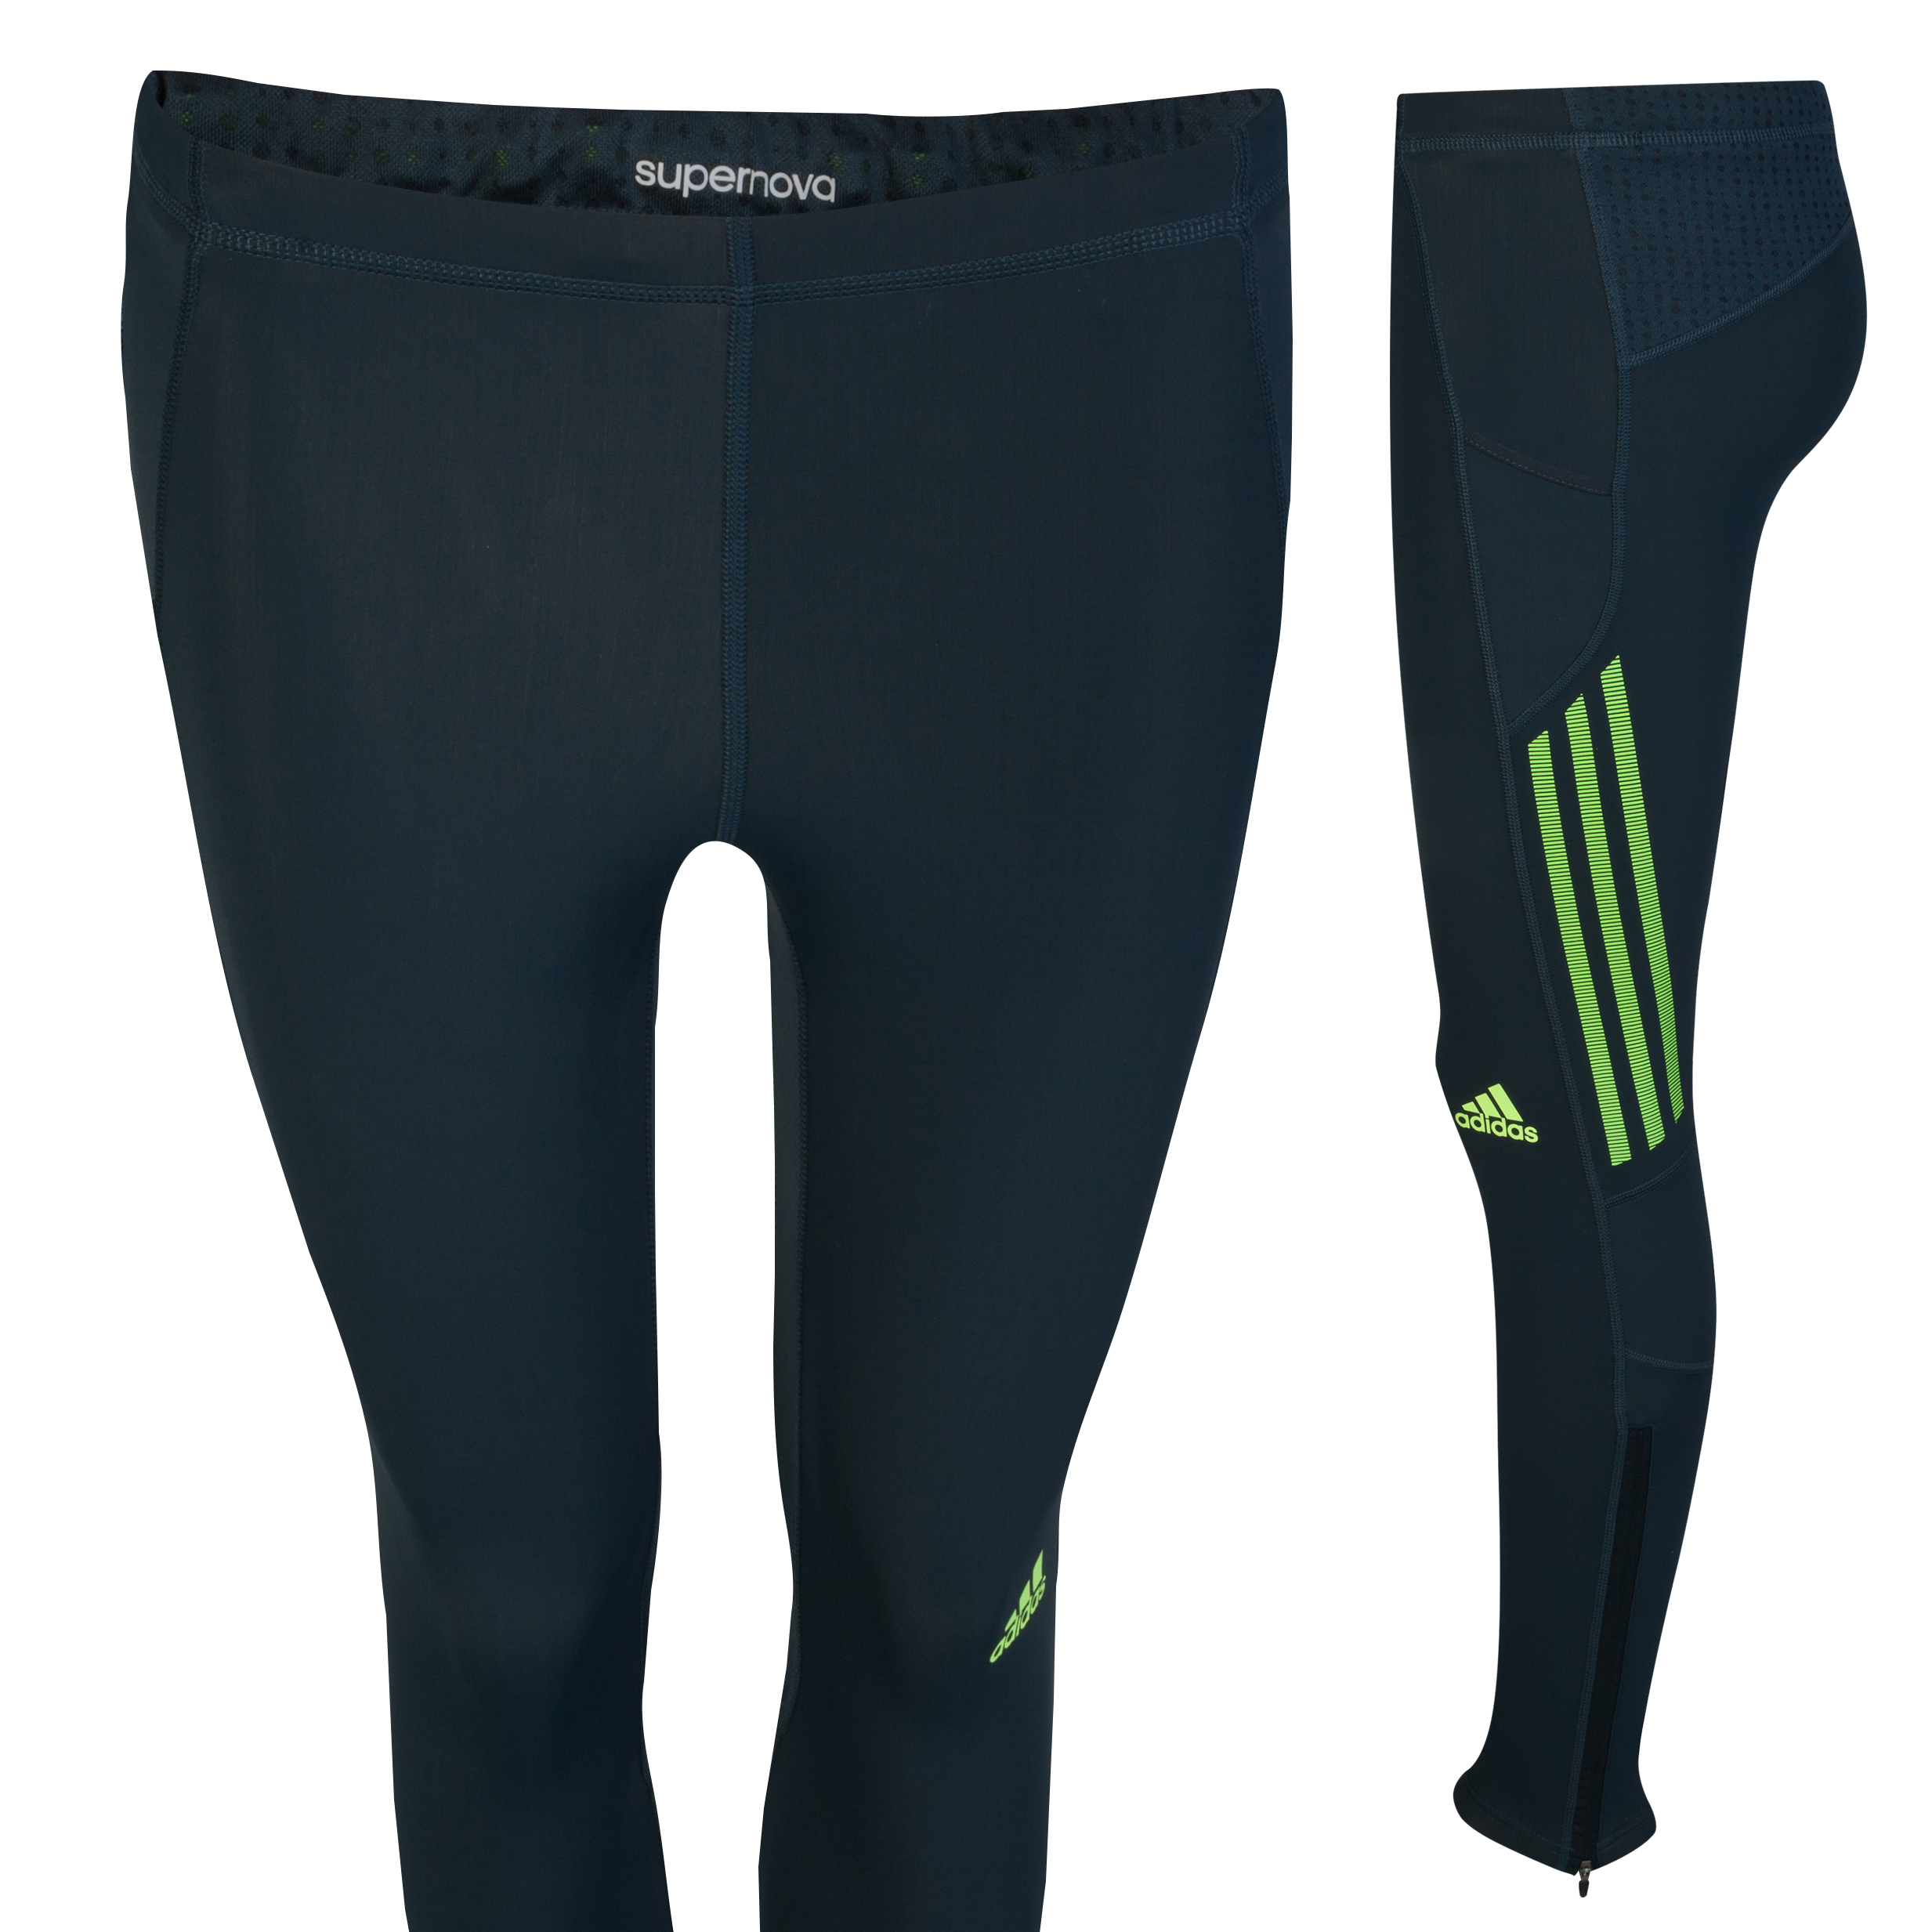 Adidas Supernova Long Tights - Tech Onix/Electricity